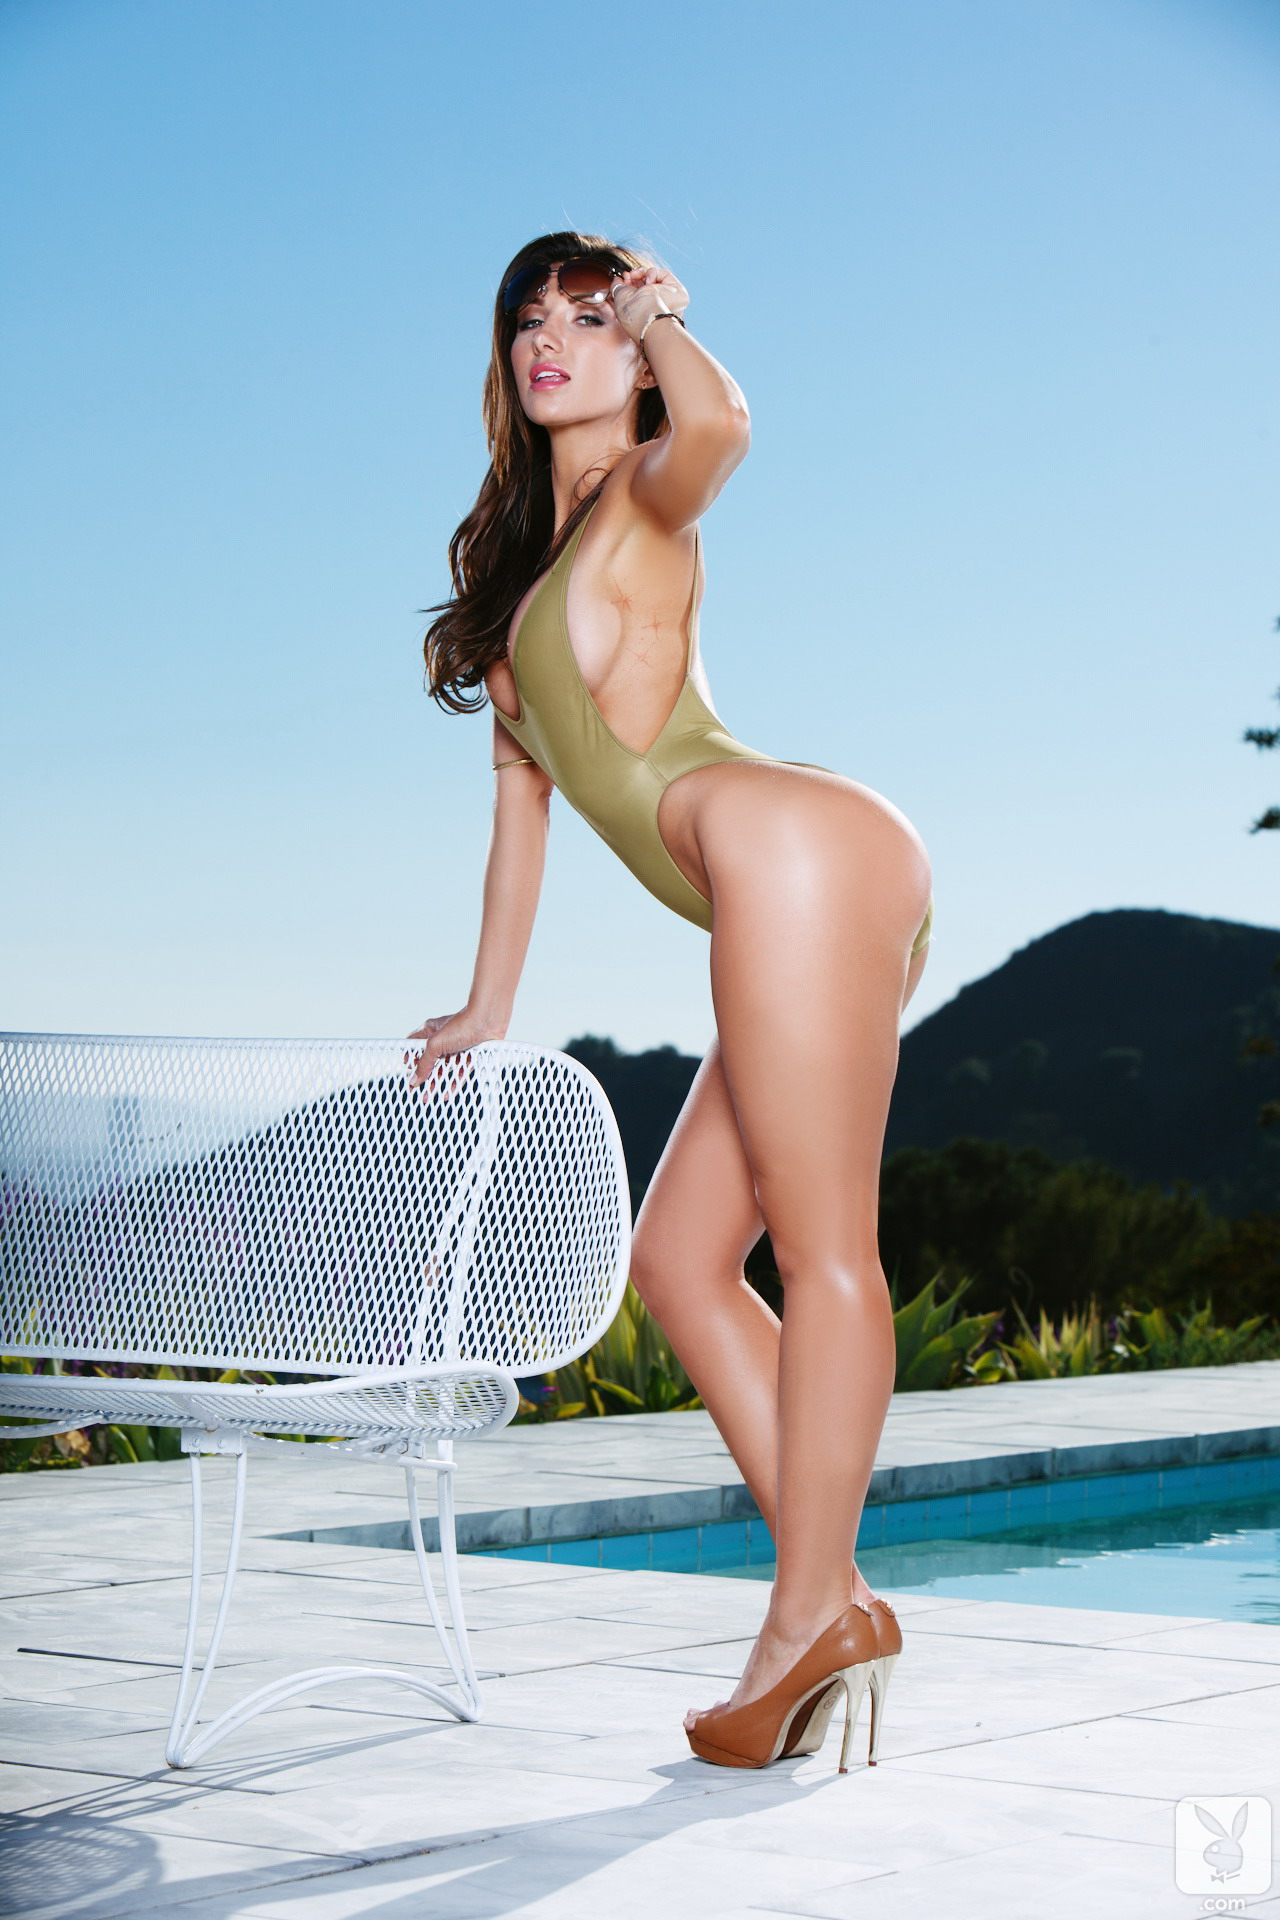 Casey connelly pool playboy 04 RedBust